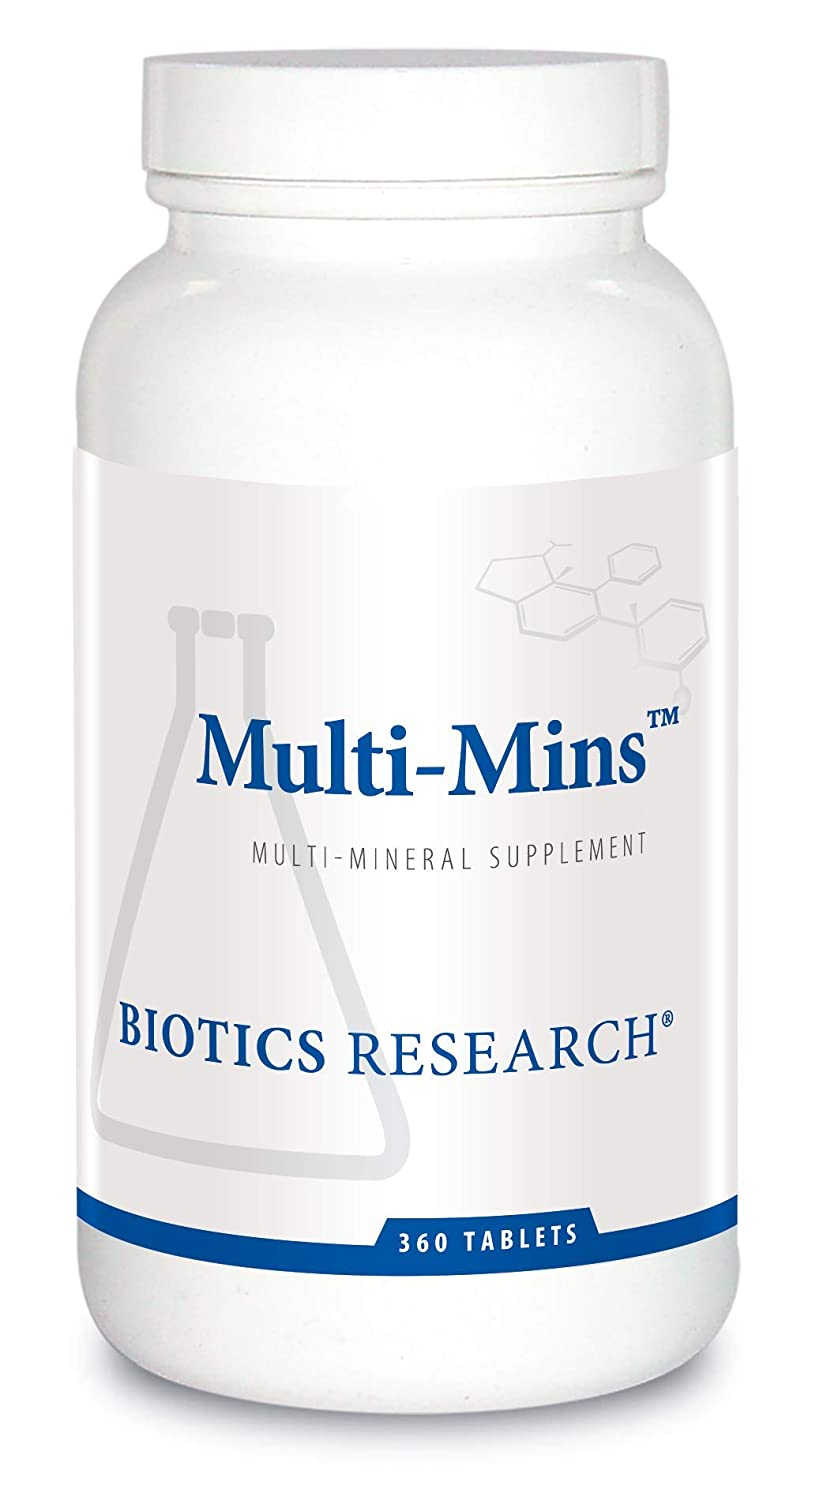 Biotics Research Multi-Mins – Multi-Mineral Complex, Full-Spectrum Mineral Complex, Balanced Source of Mineral Chelates and Whole Food, Phytochemically-Bound Trace Minerals, Easily Absorbed. 360 Tabs